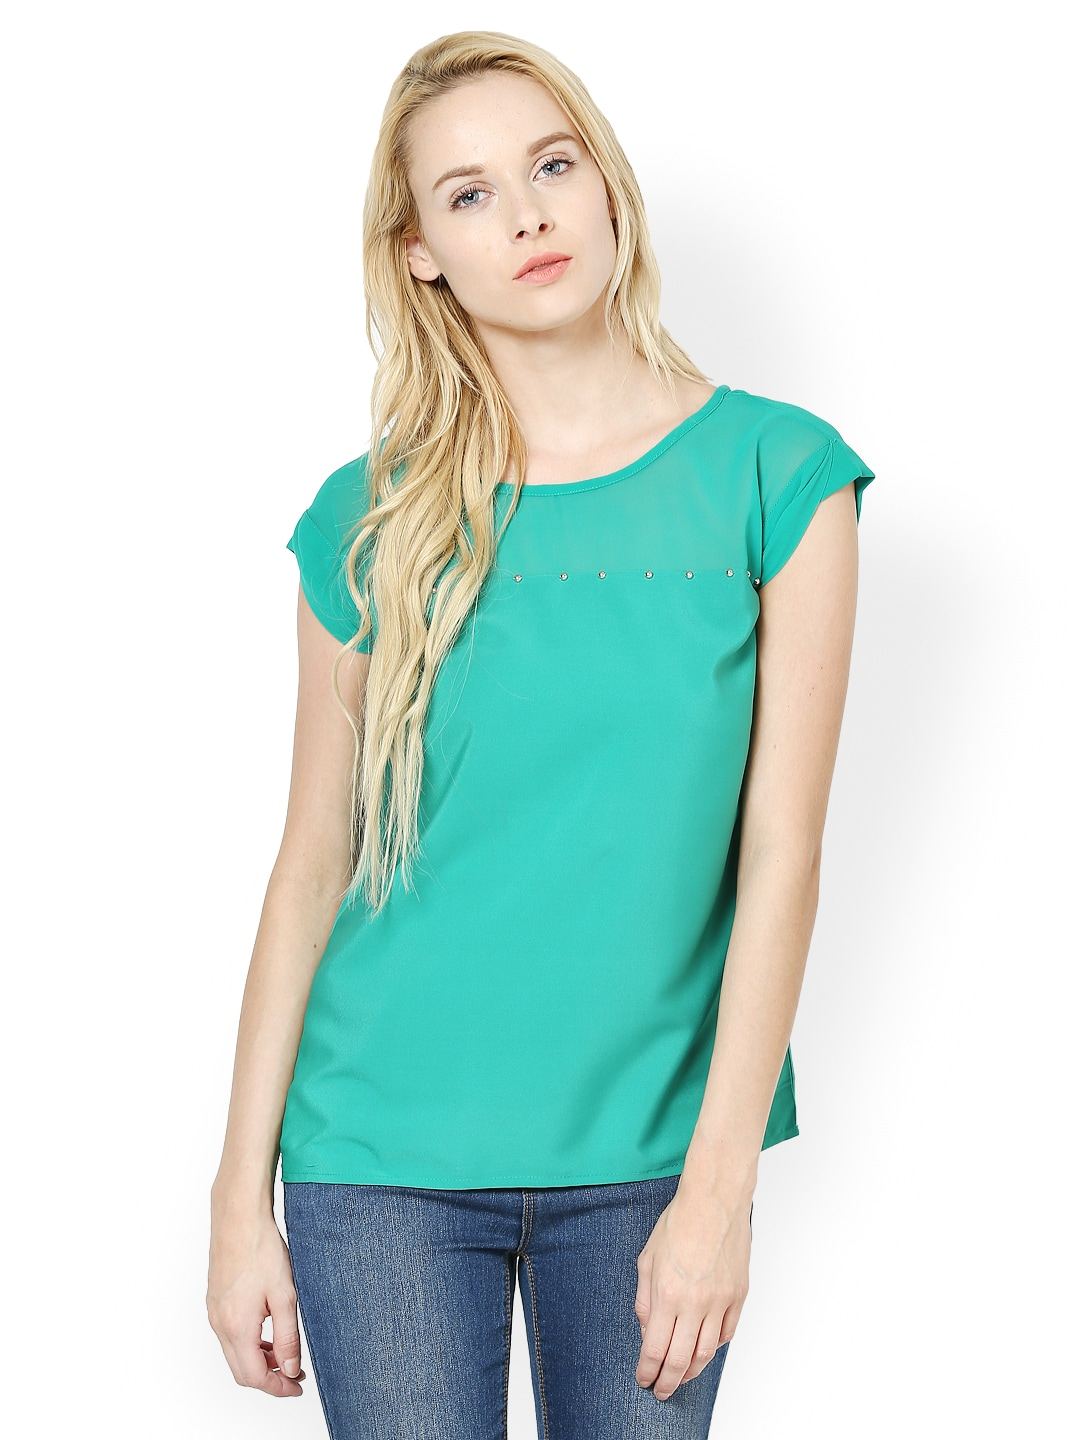 Harpa Harpa Women Turquoise Blue Top (Multicolor)